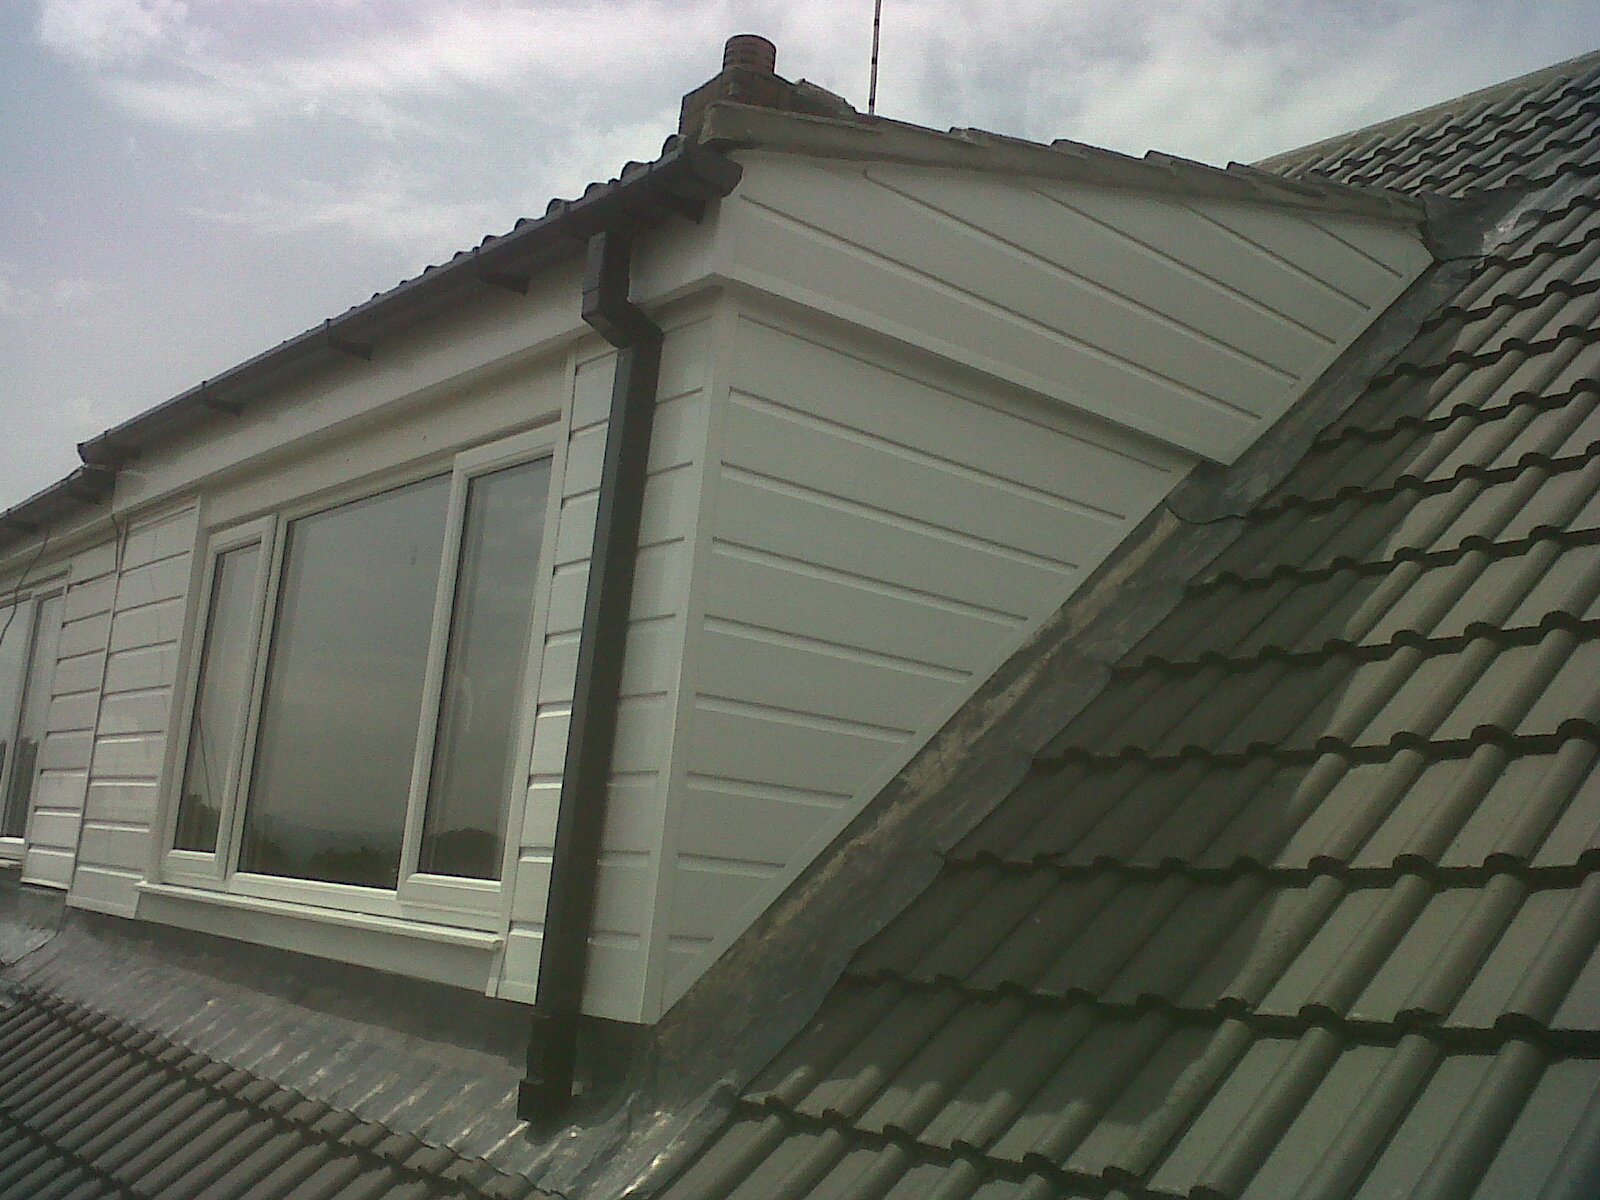 File:Concrete tile re-roof with UPVC dormer.jpg - Wikimedia Commons